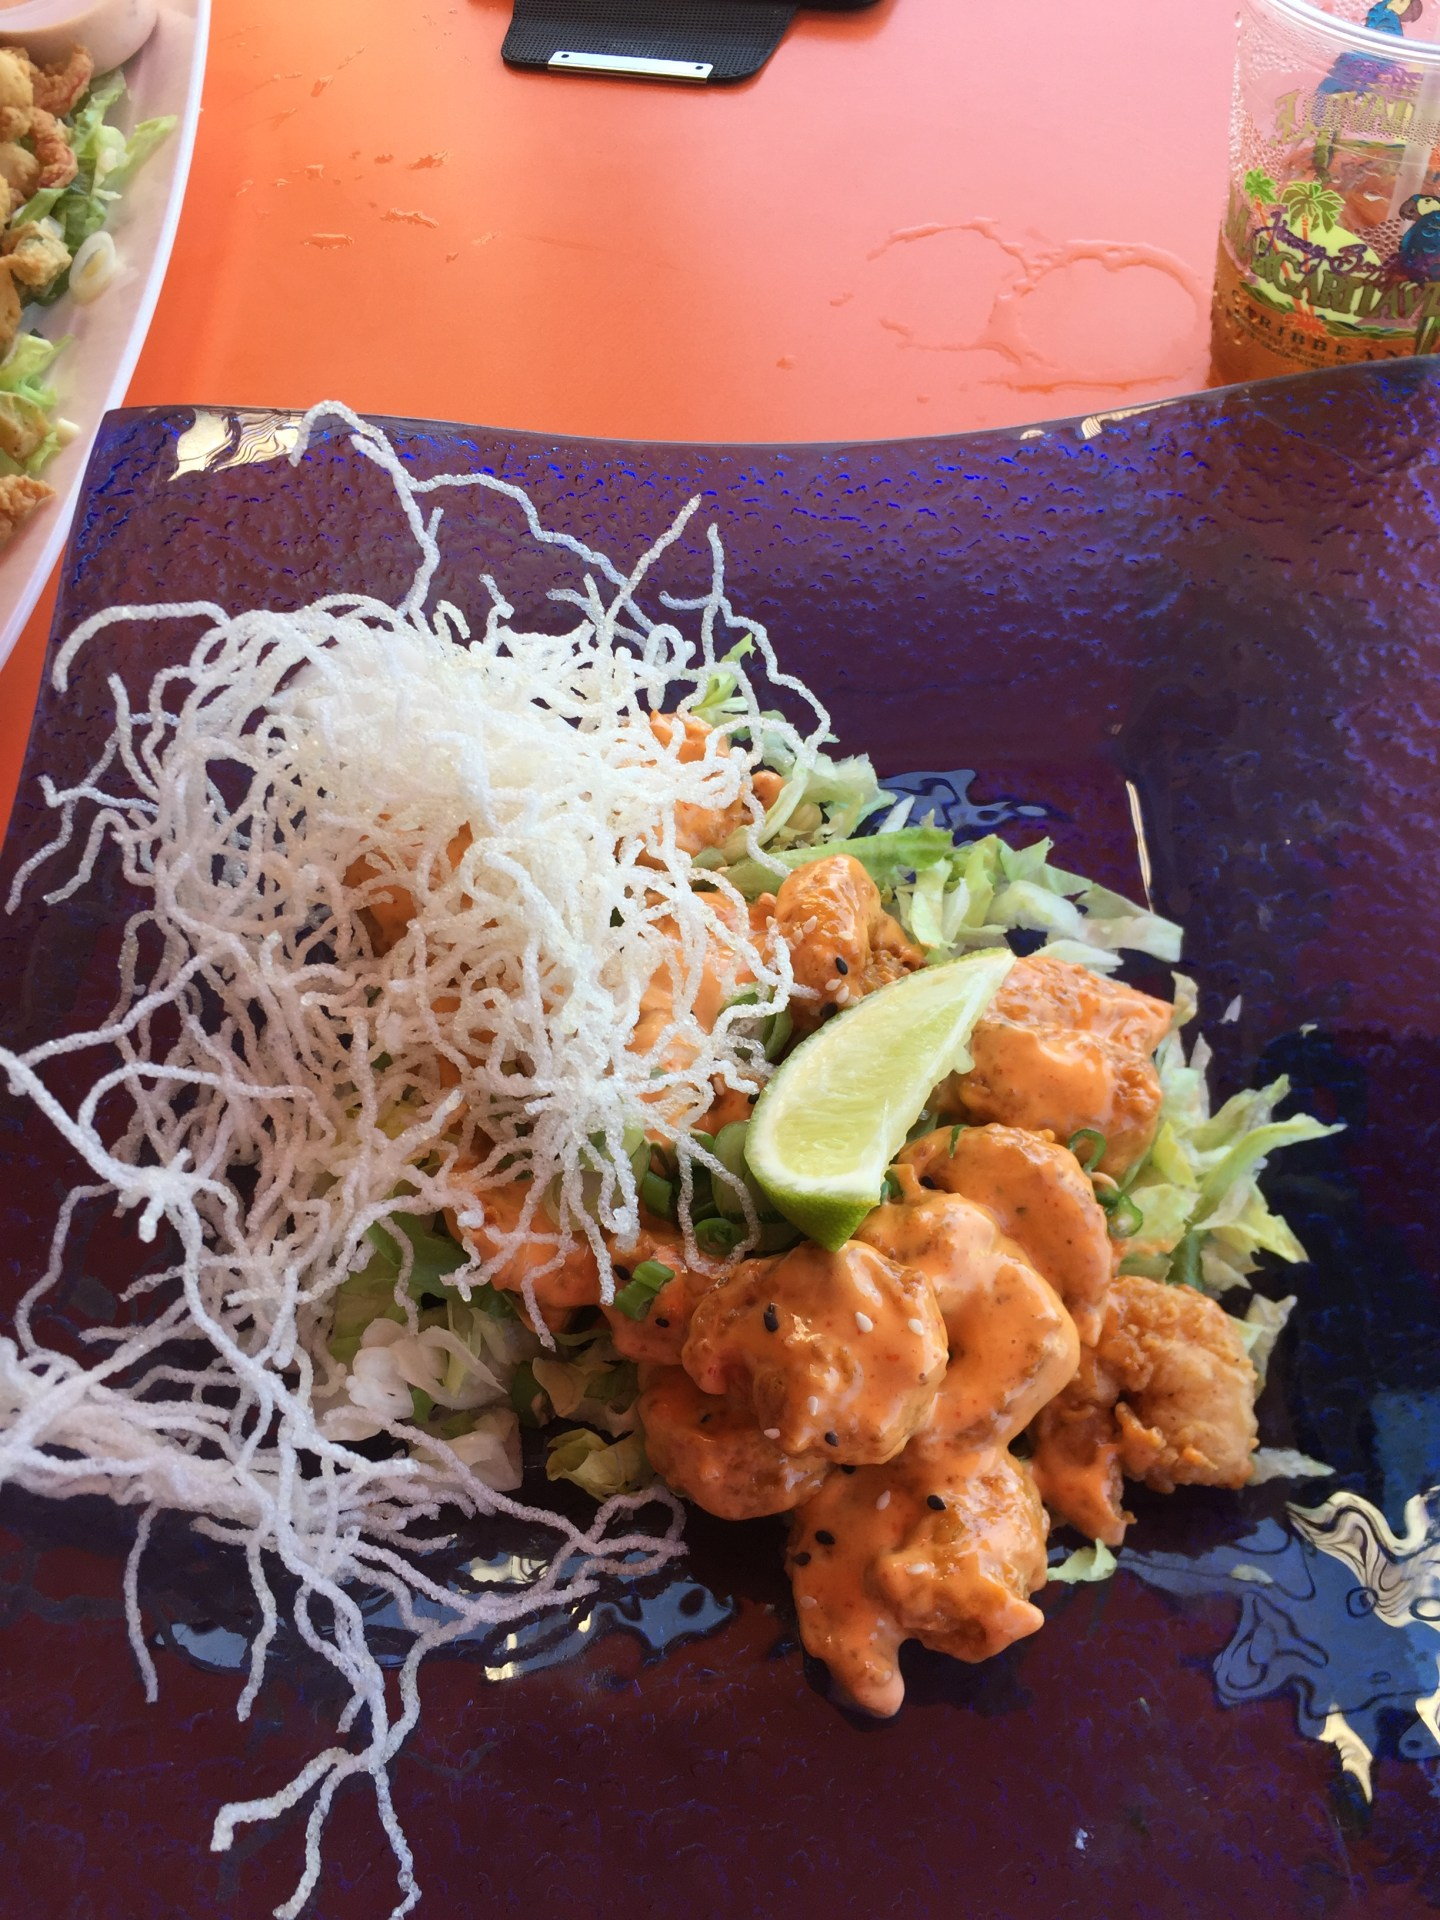 Lava Lava Shrimp from Margaritaville's appetizer menu.